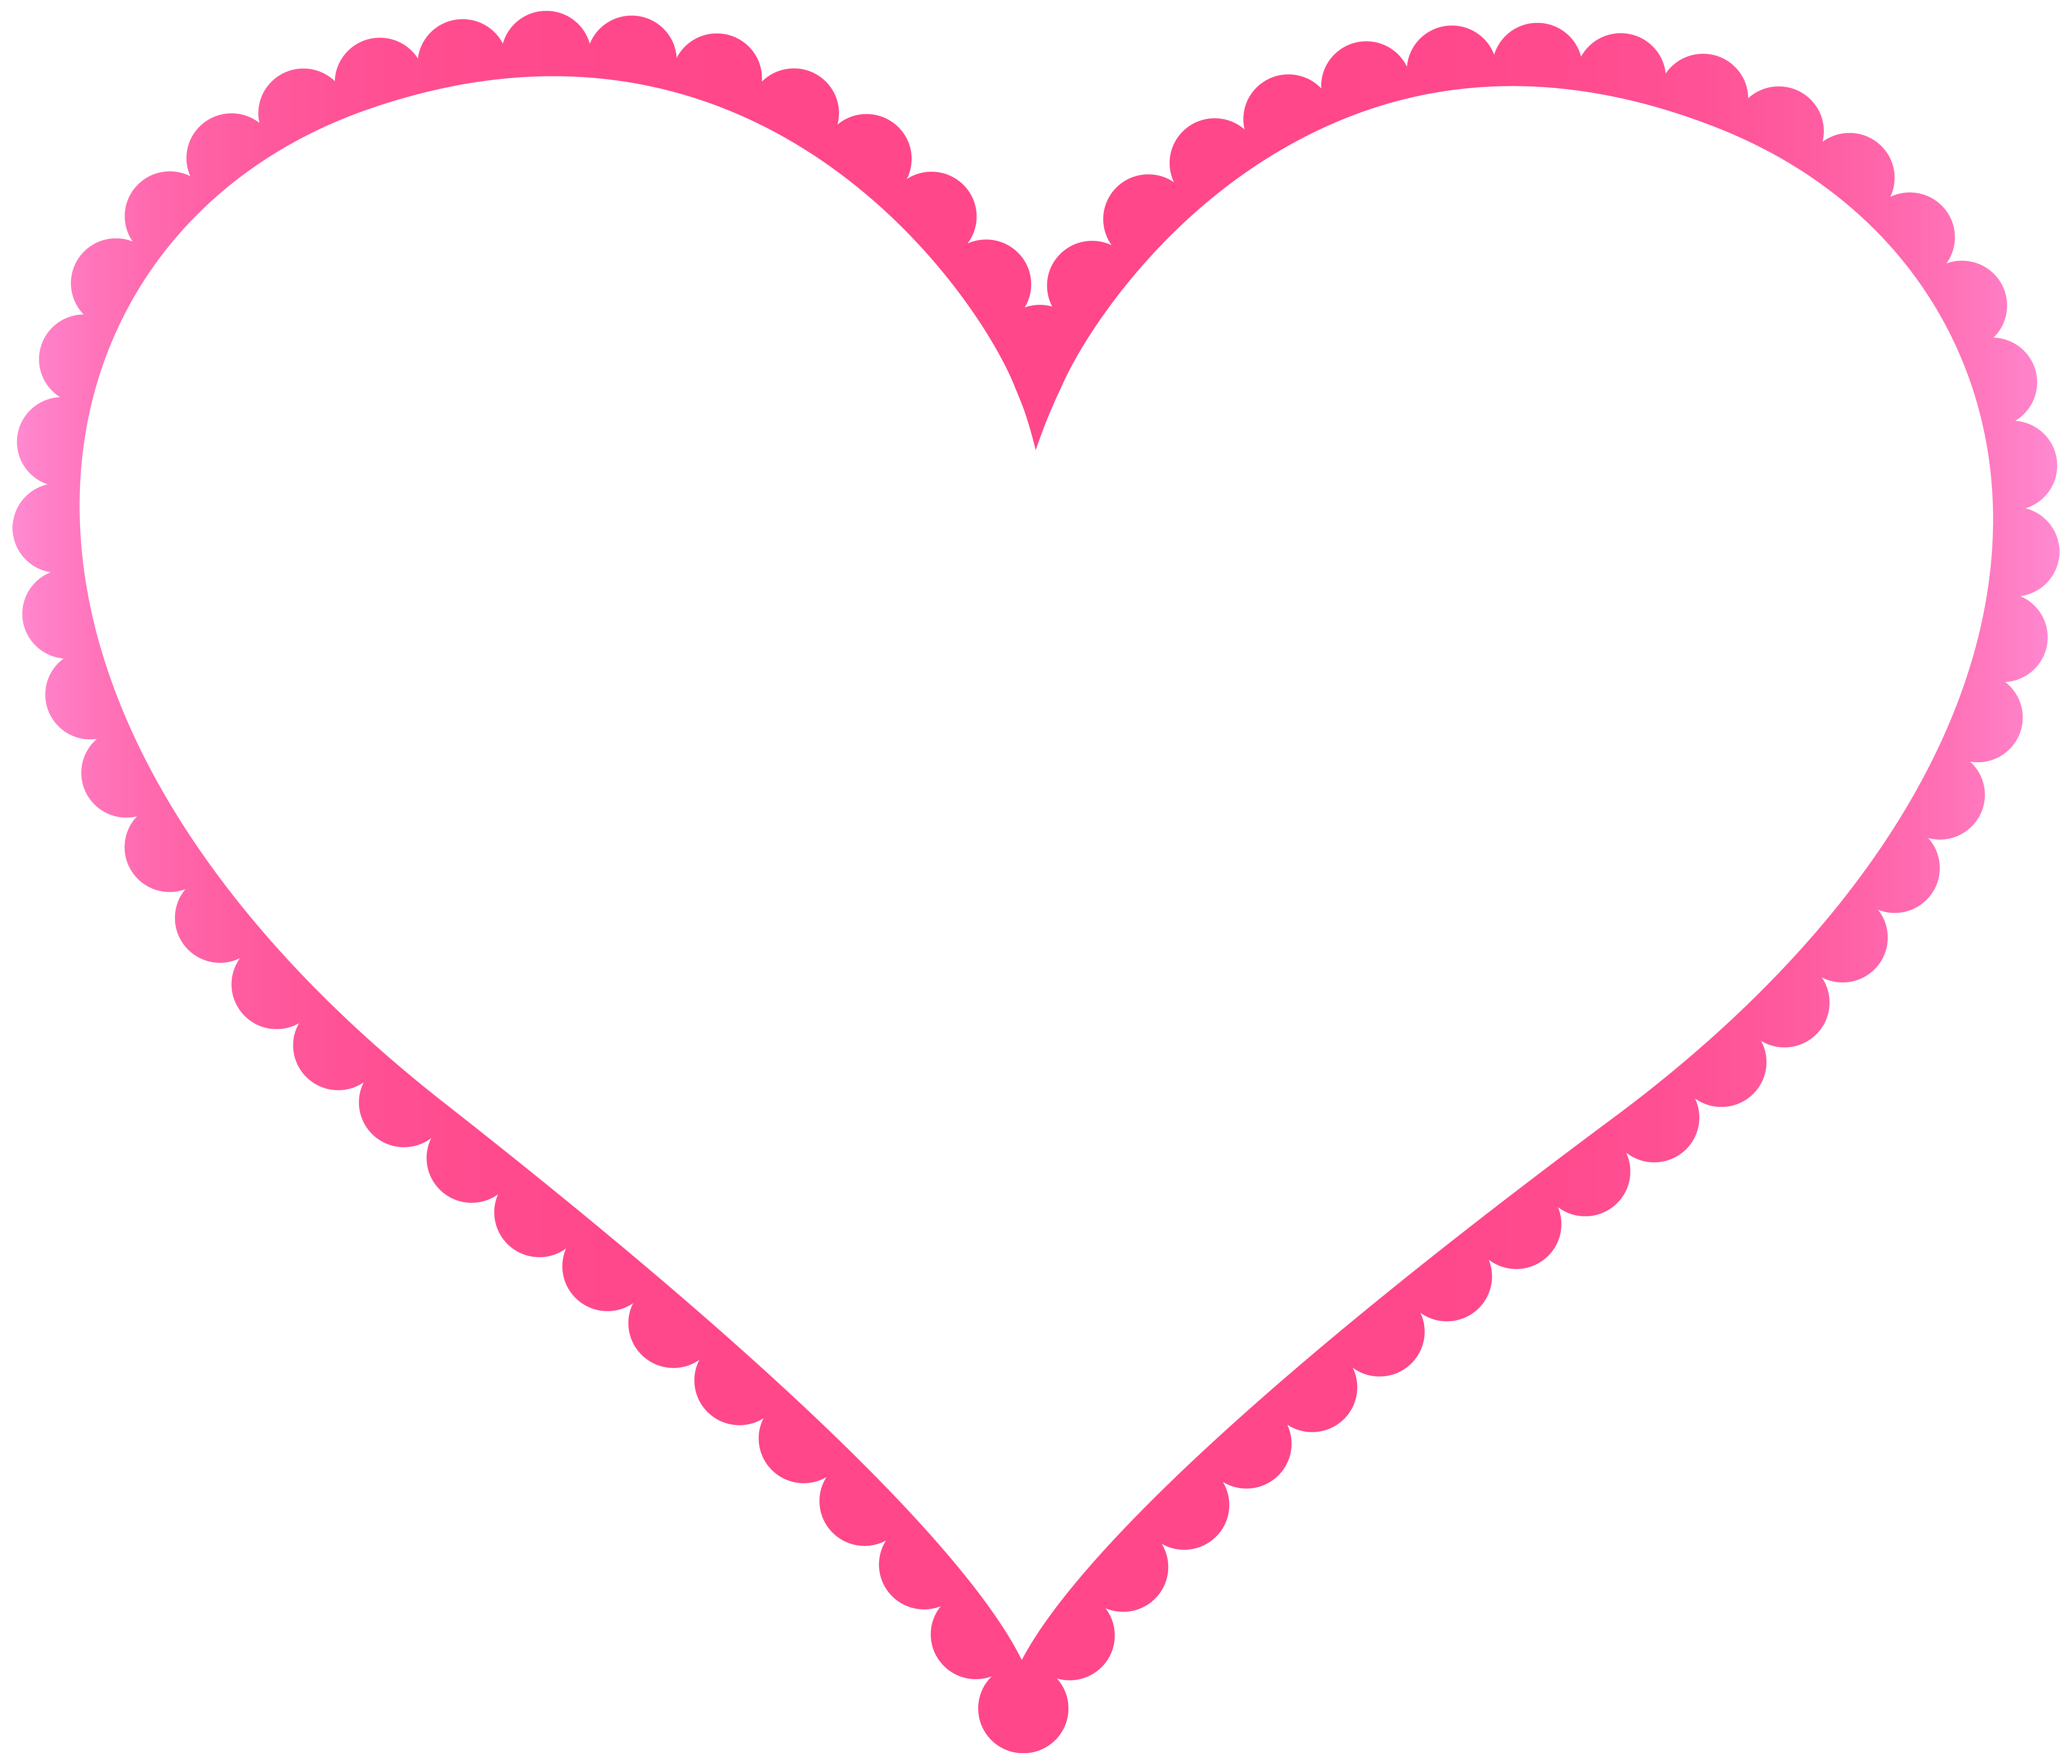 8000x6810 Pink Heart Border Frame Transparent PNG Clip Artu200b Gallery